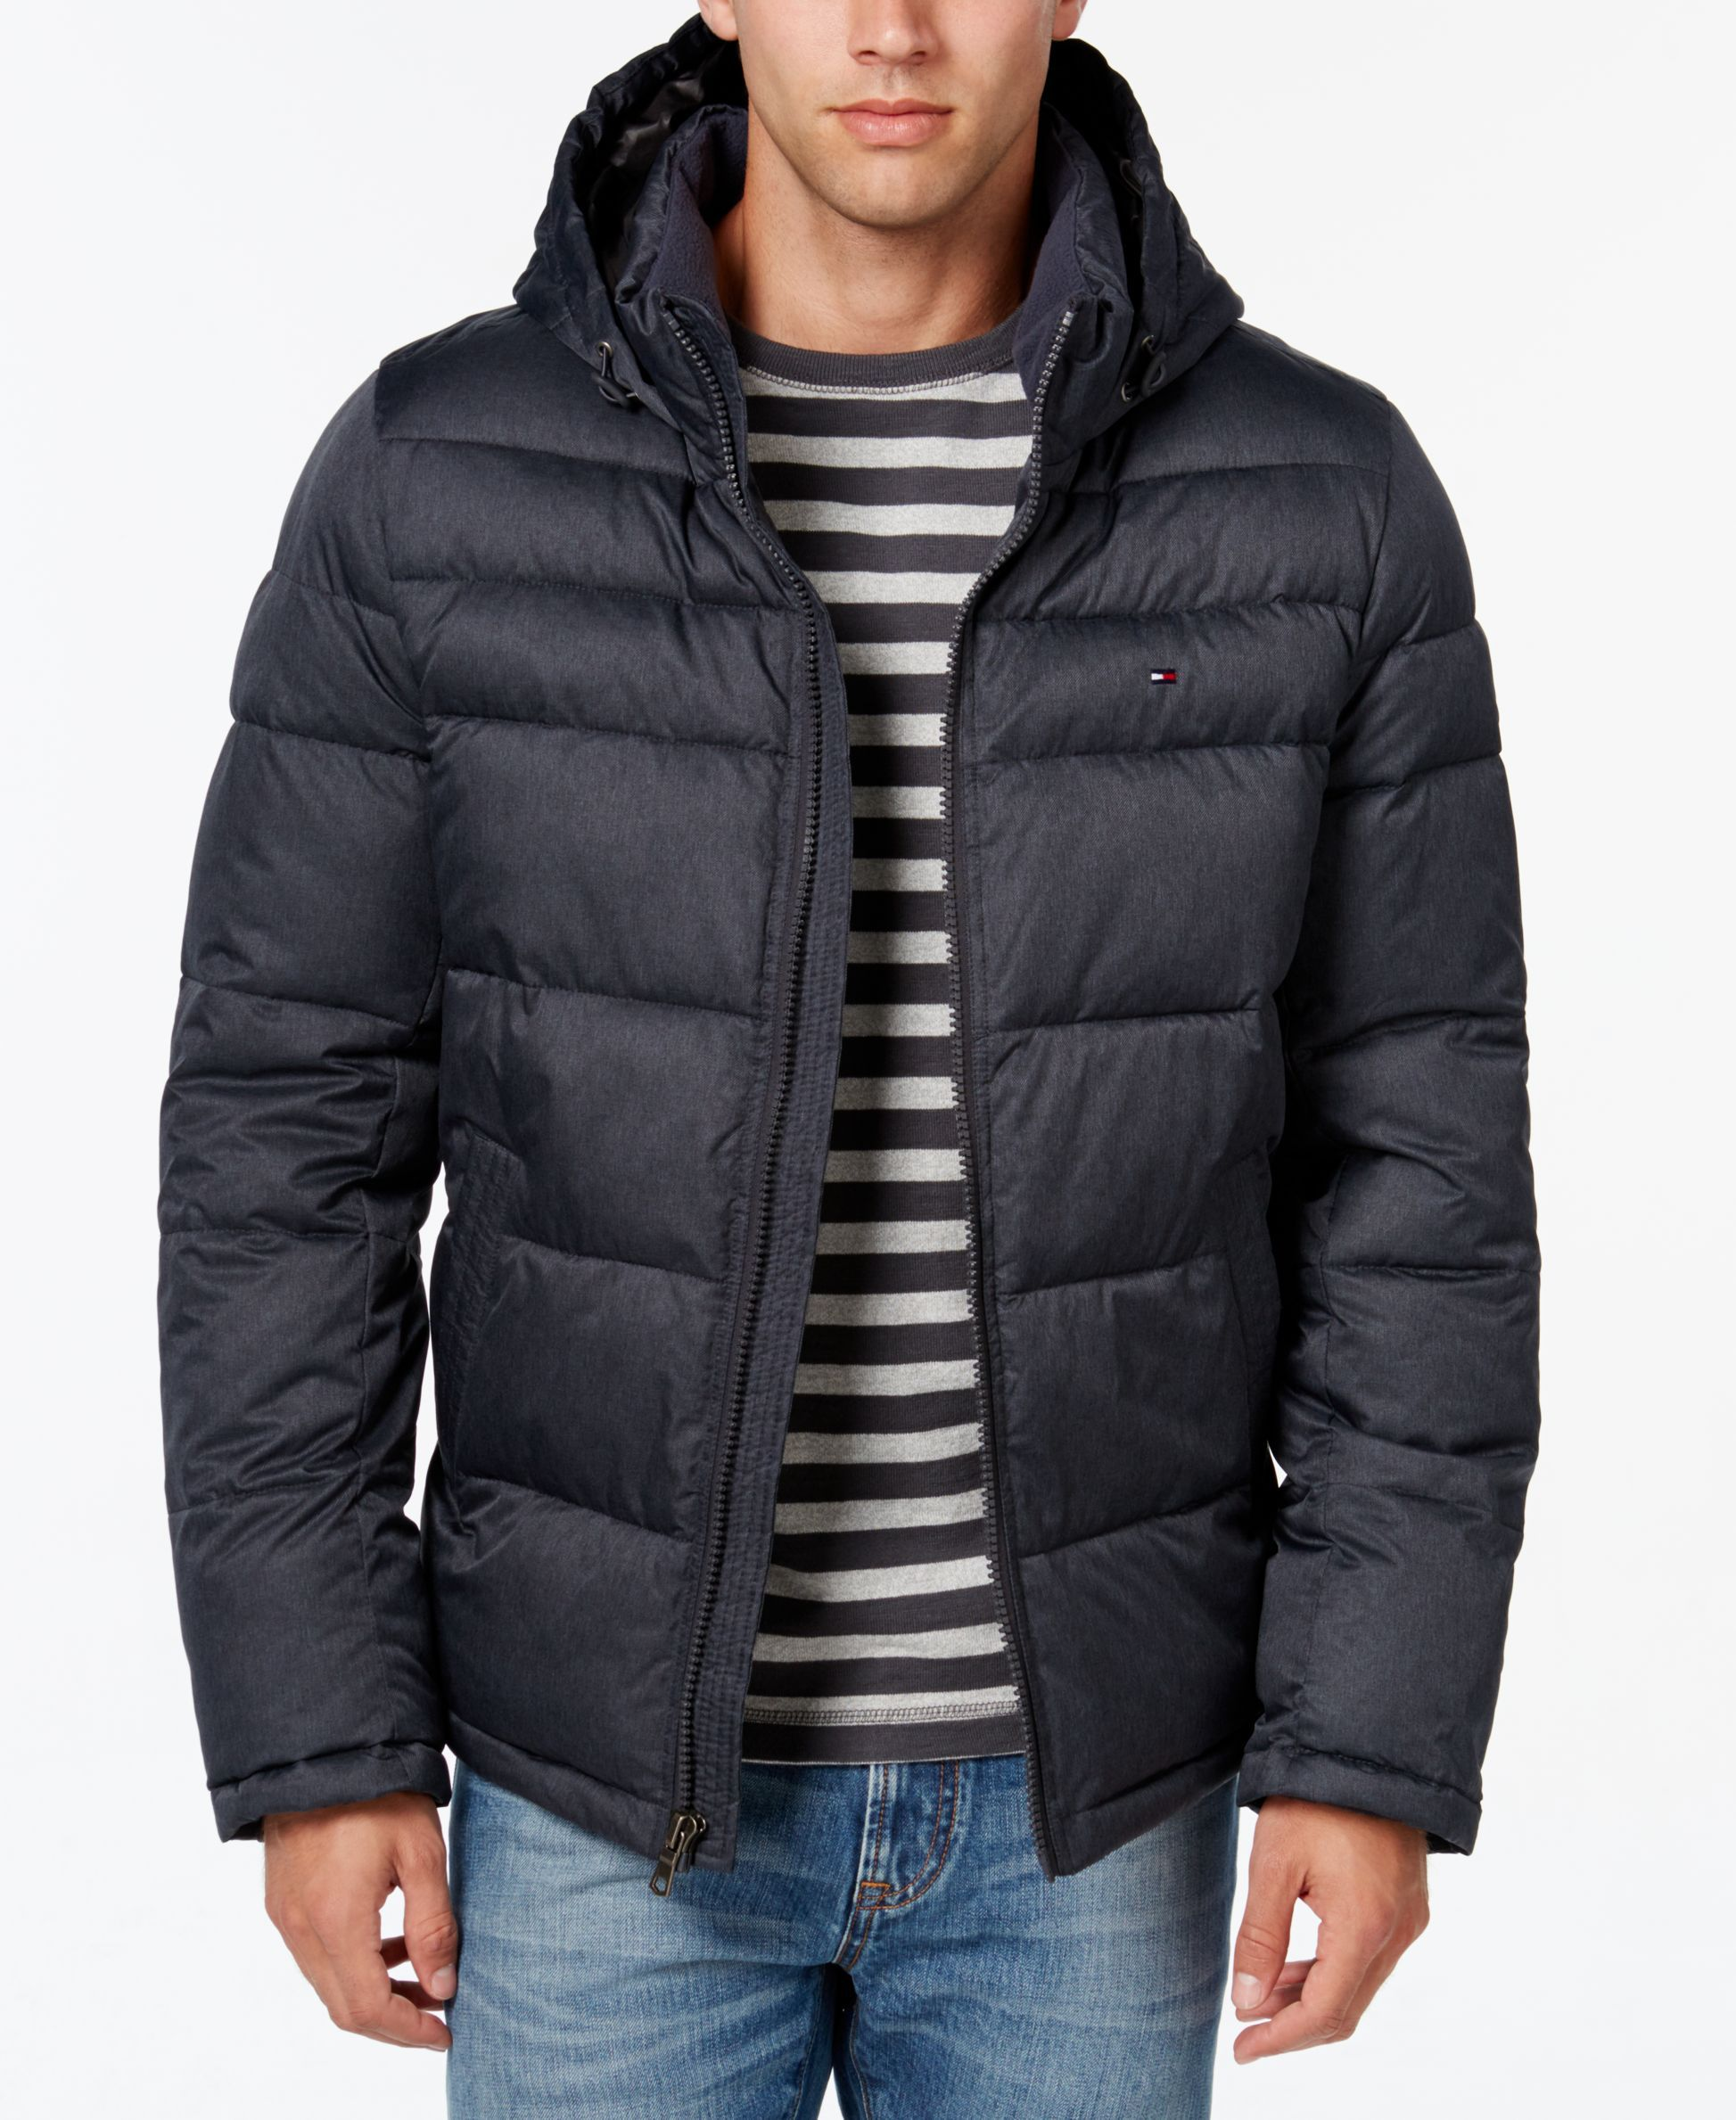 916d242a5f0f Tommy Hilfiger Men s Classic Hooded Puffer Jacket